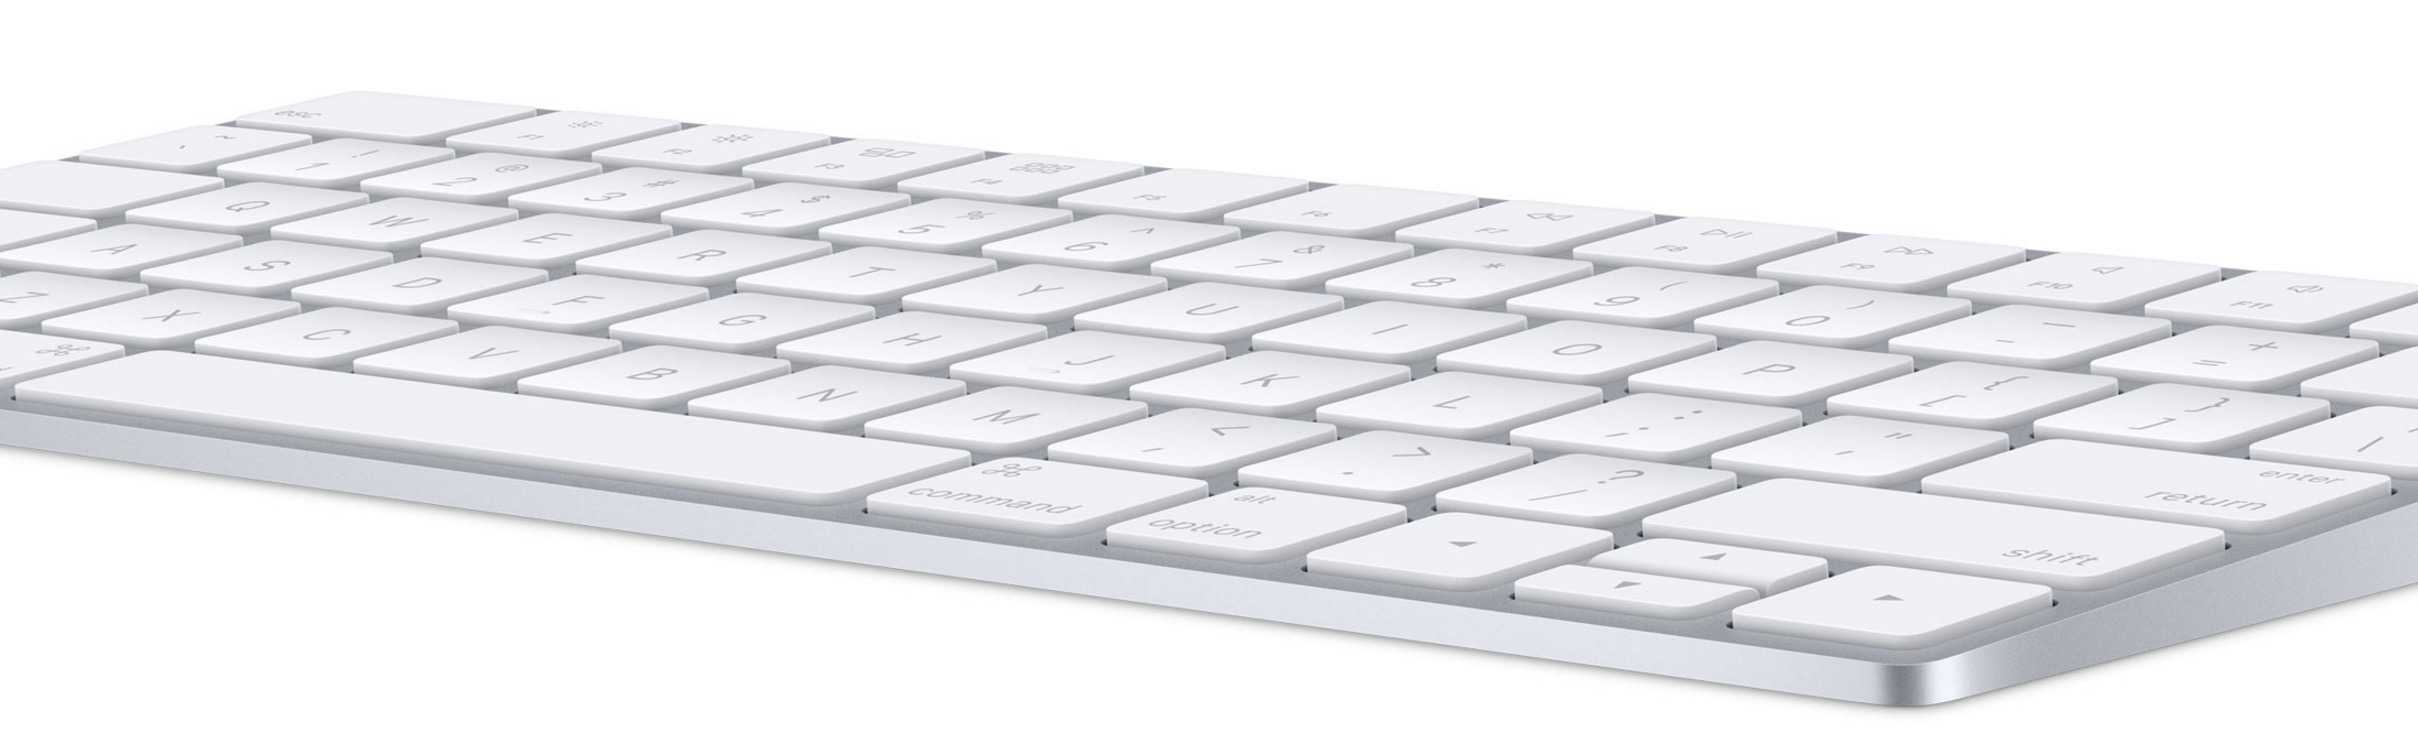 how to use a bluetooth keyboard with apple tv cult of mac. Black Bedroom Furniture Sets. Home Design Ideas